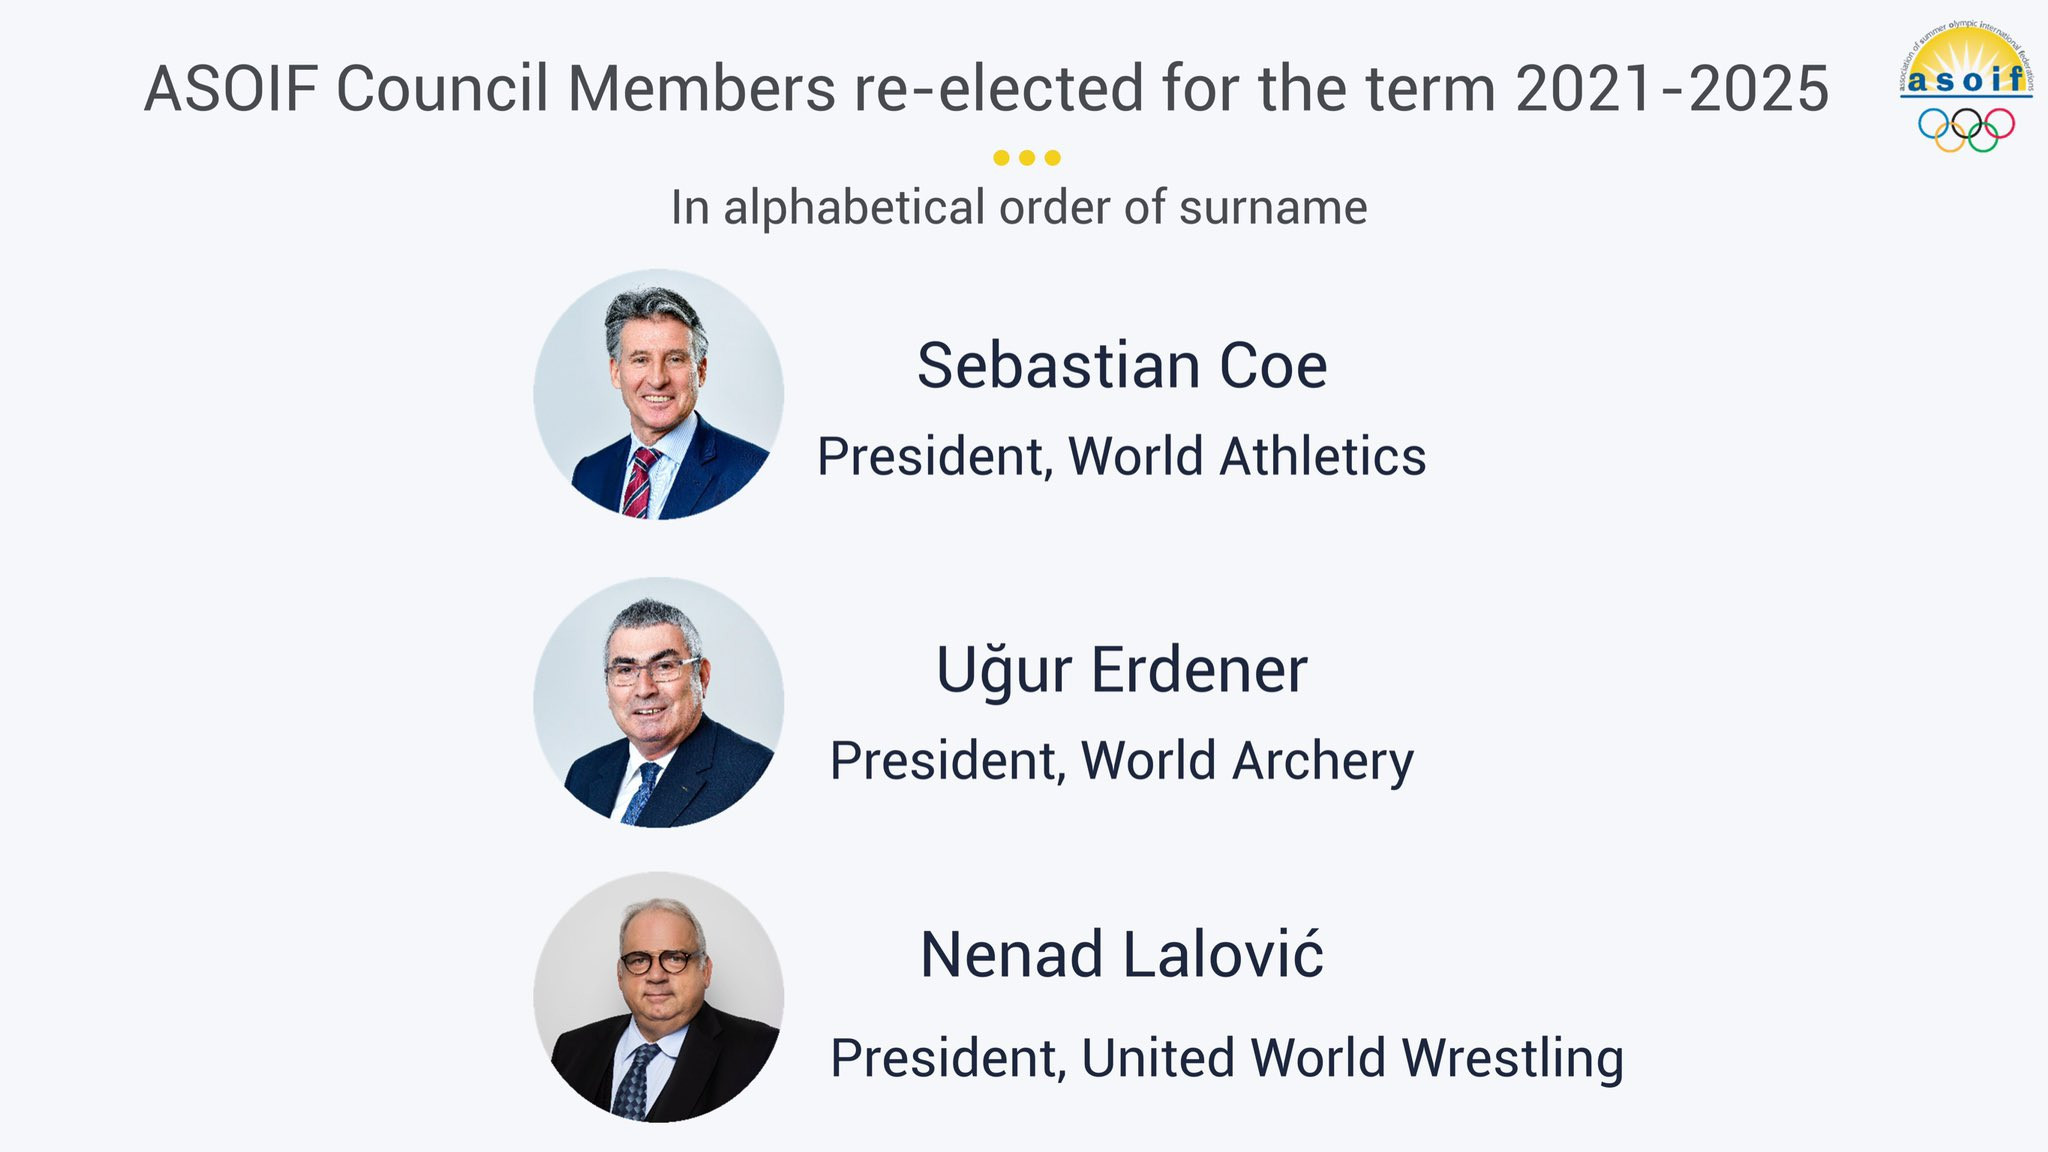 Three members of the ASOIF Council have been re-elected ©ASOIF